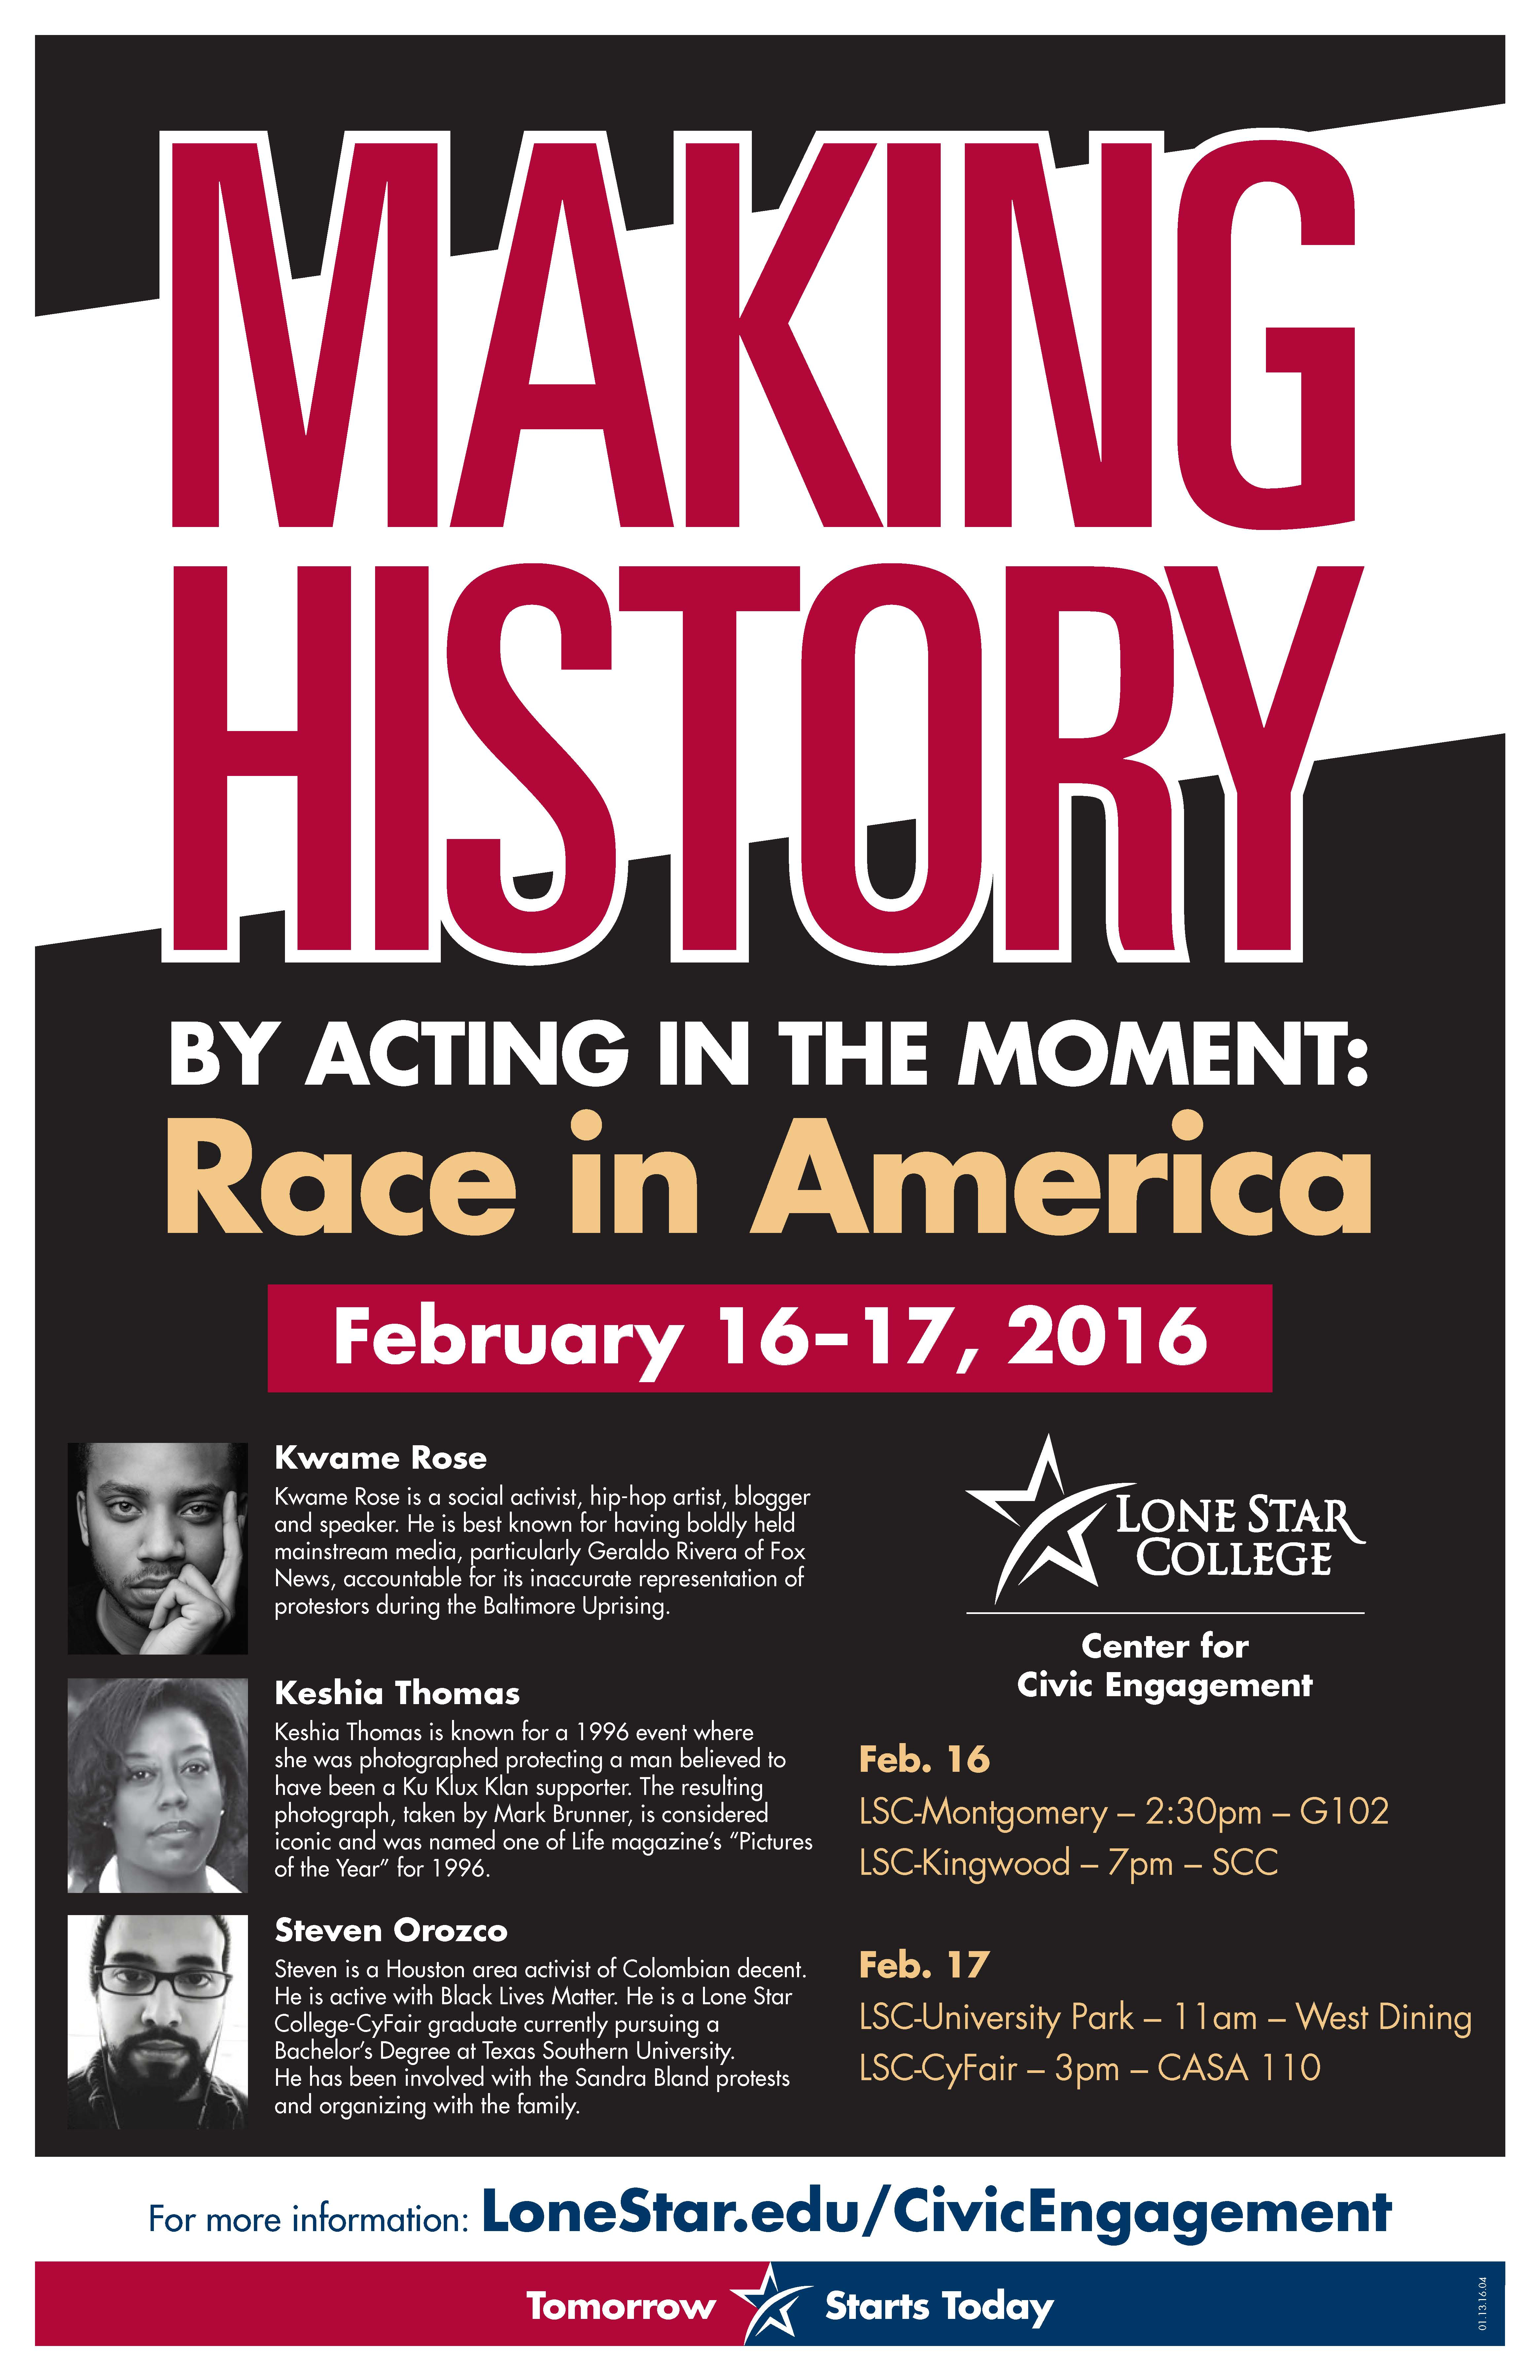 Making history by acting in the moment: Race In America